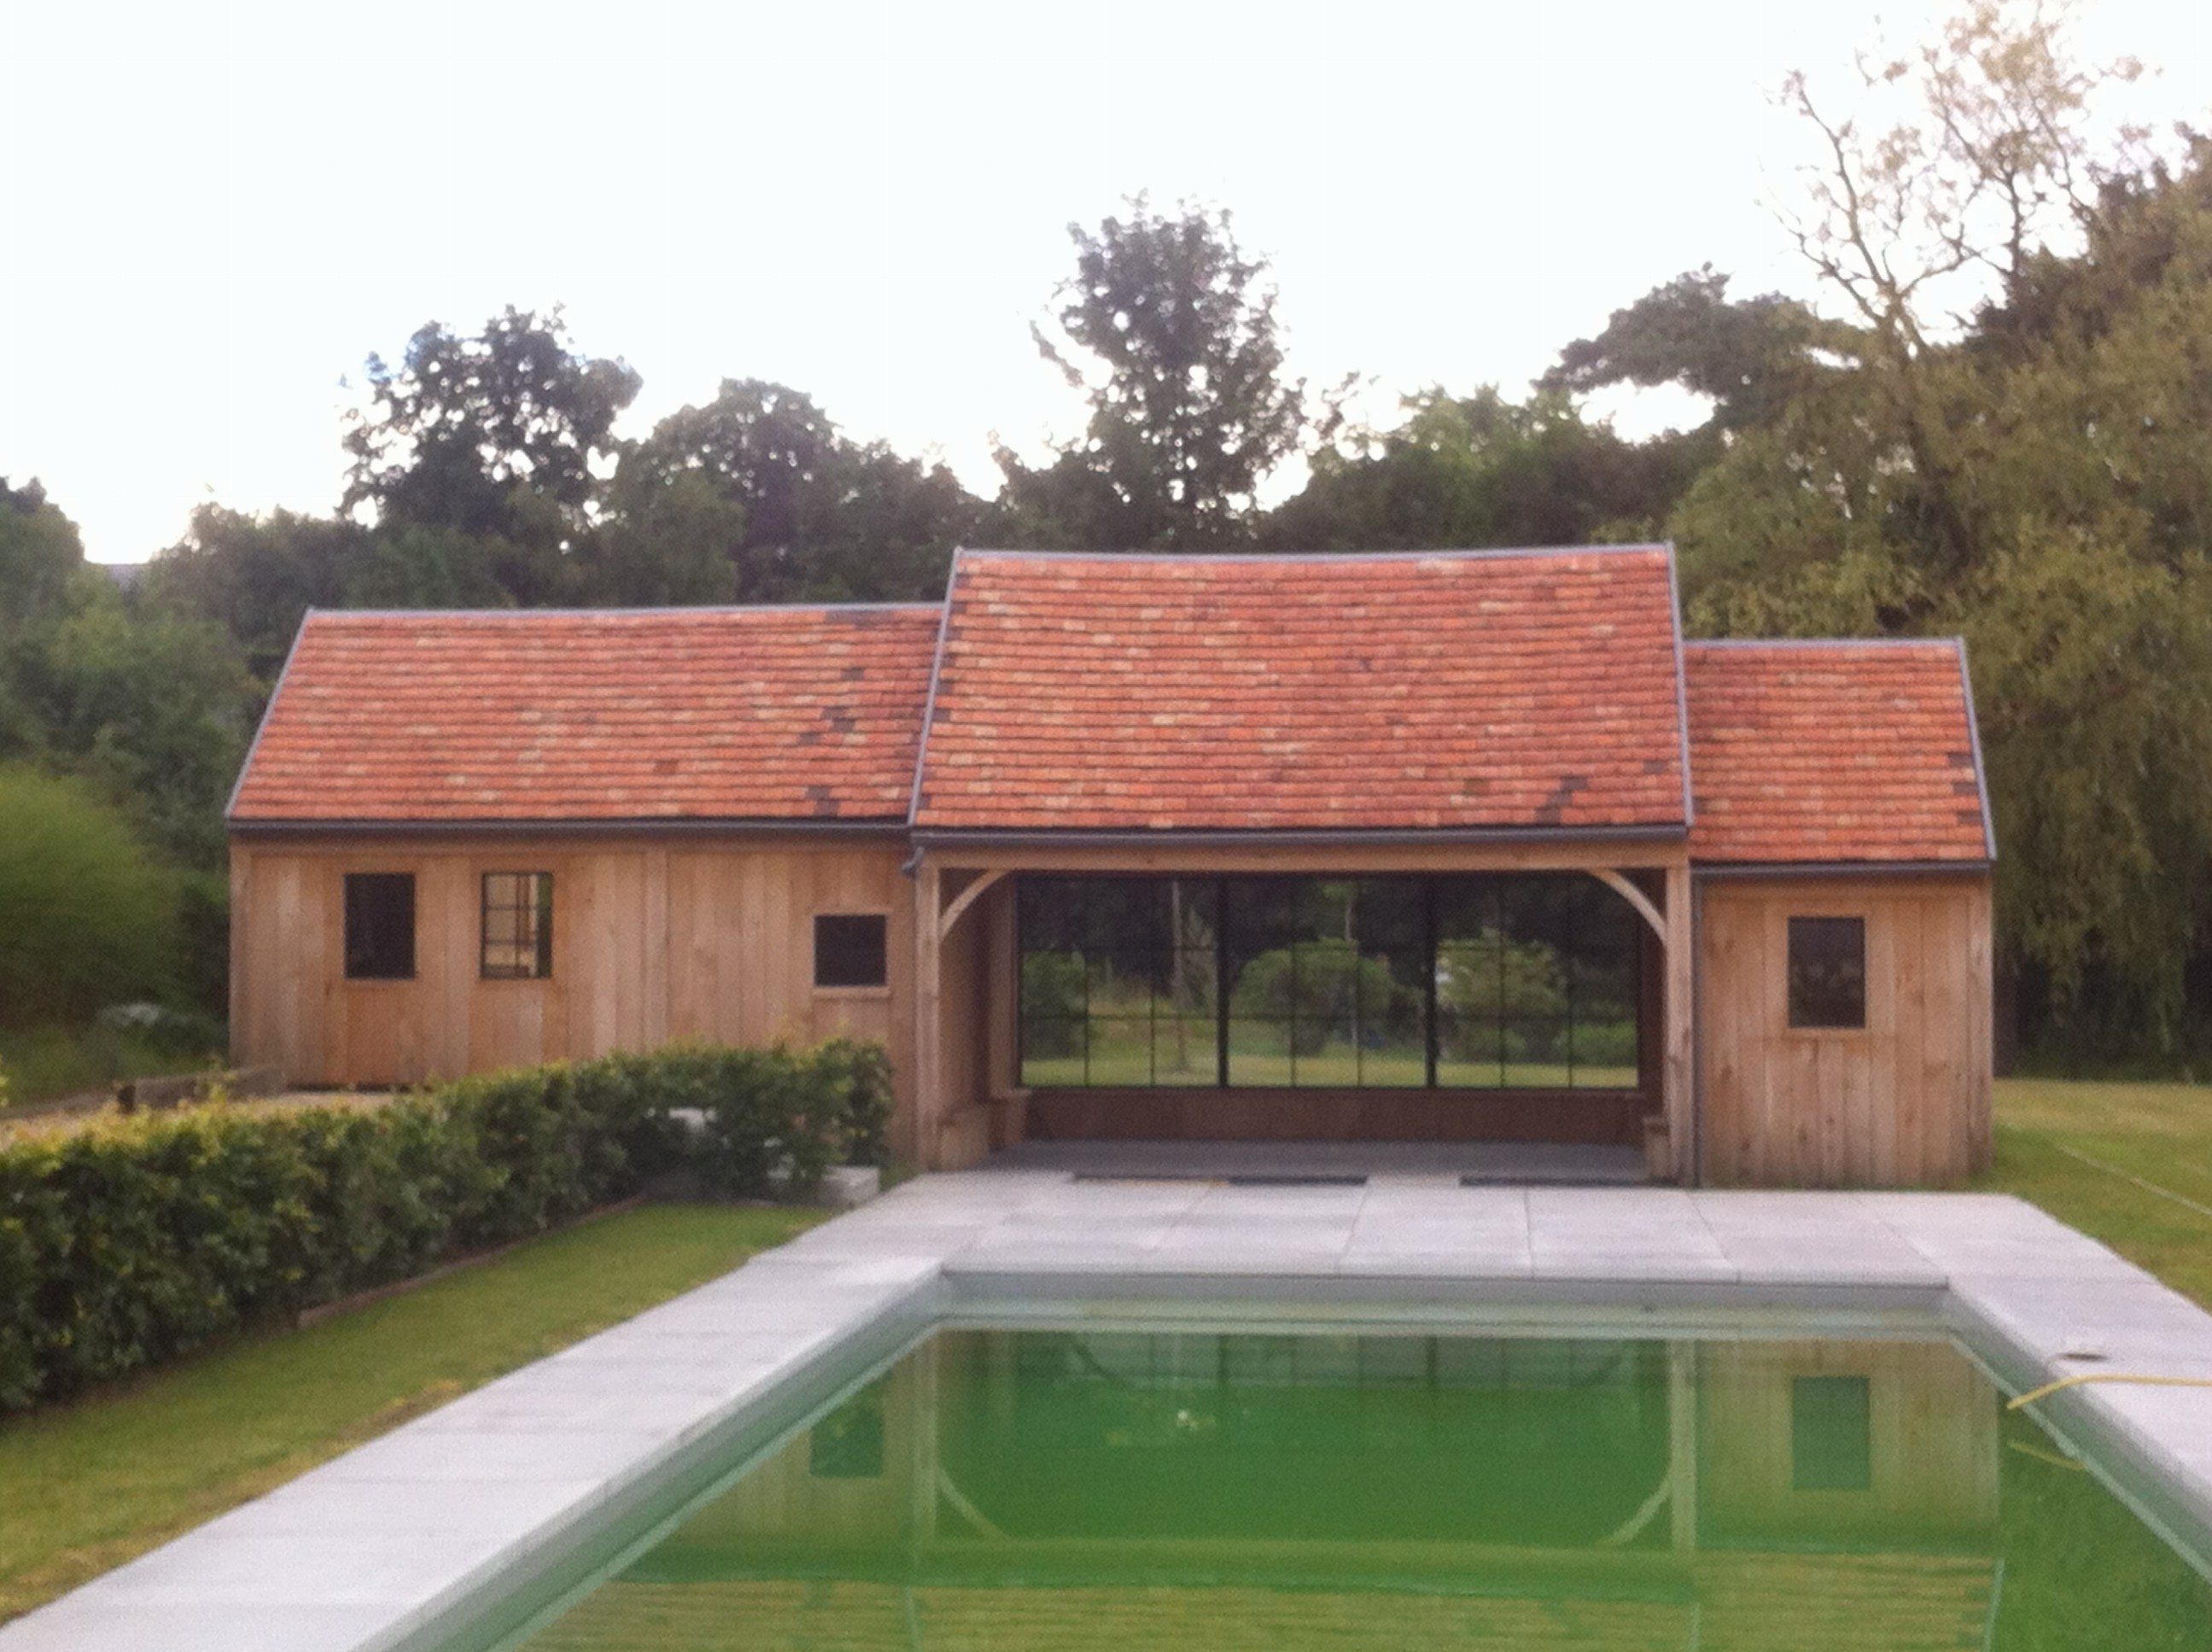 Pool house construction piscine belgique mischaperch for Construction pool house piscine